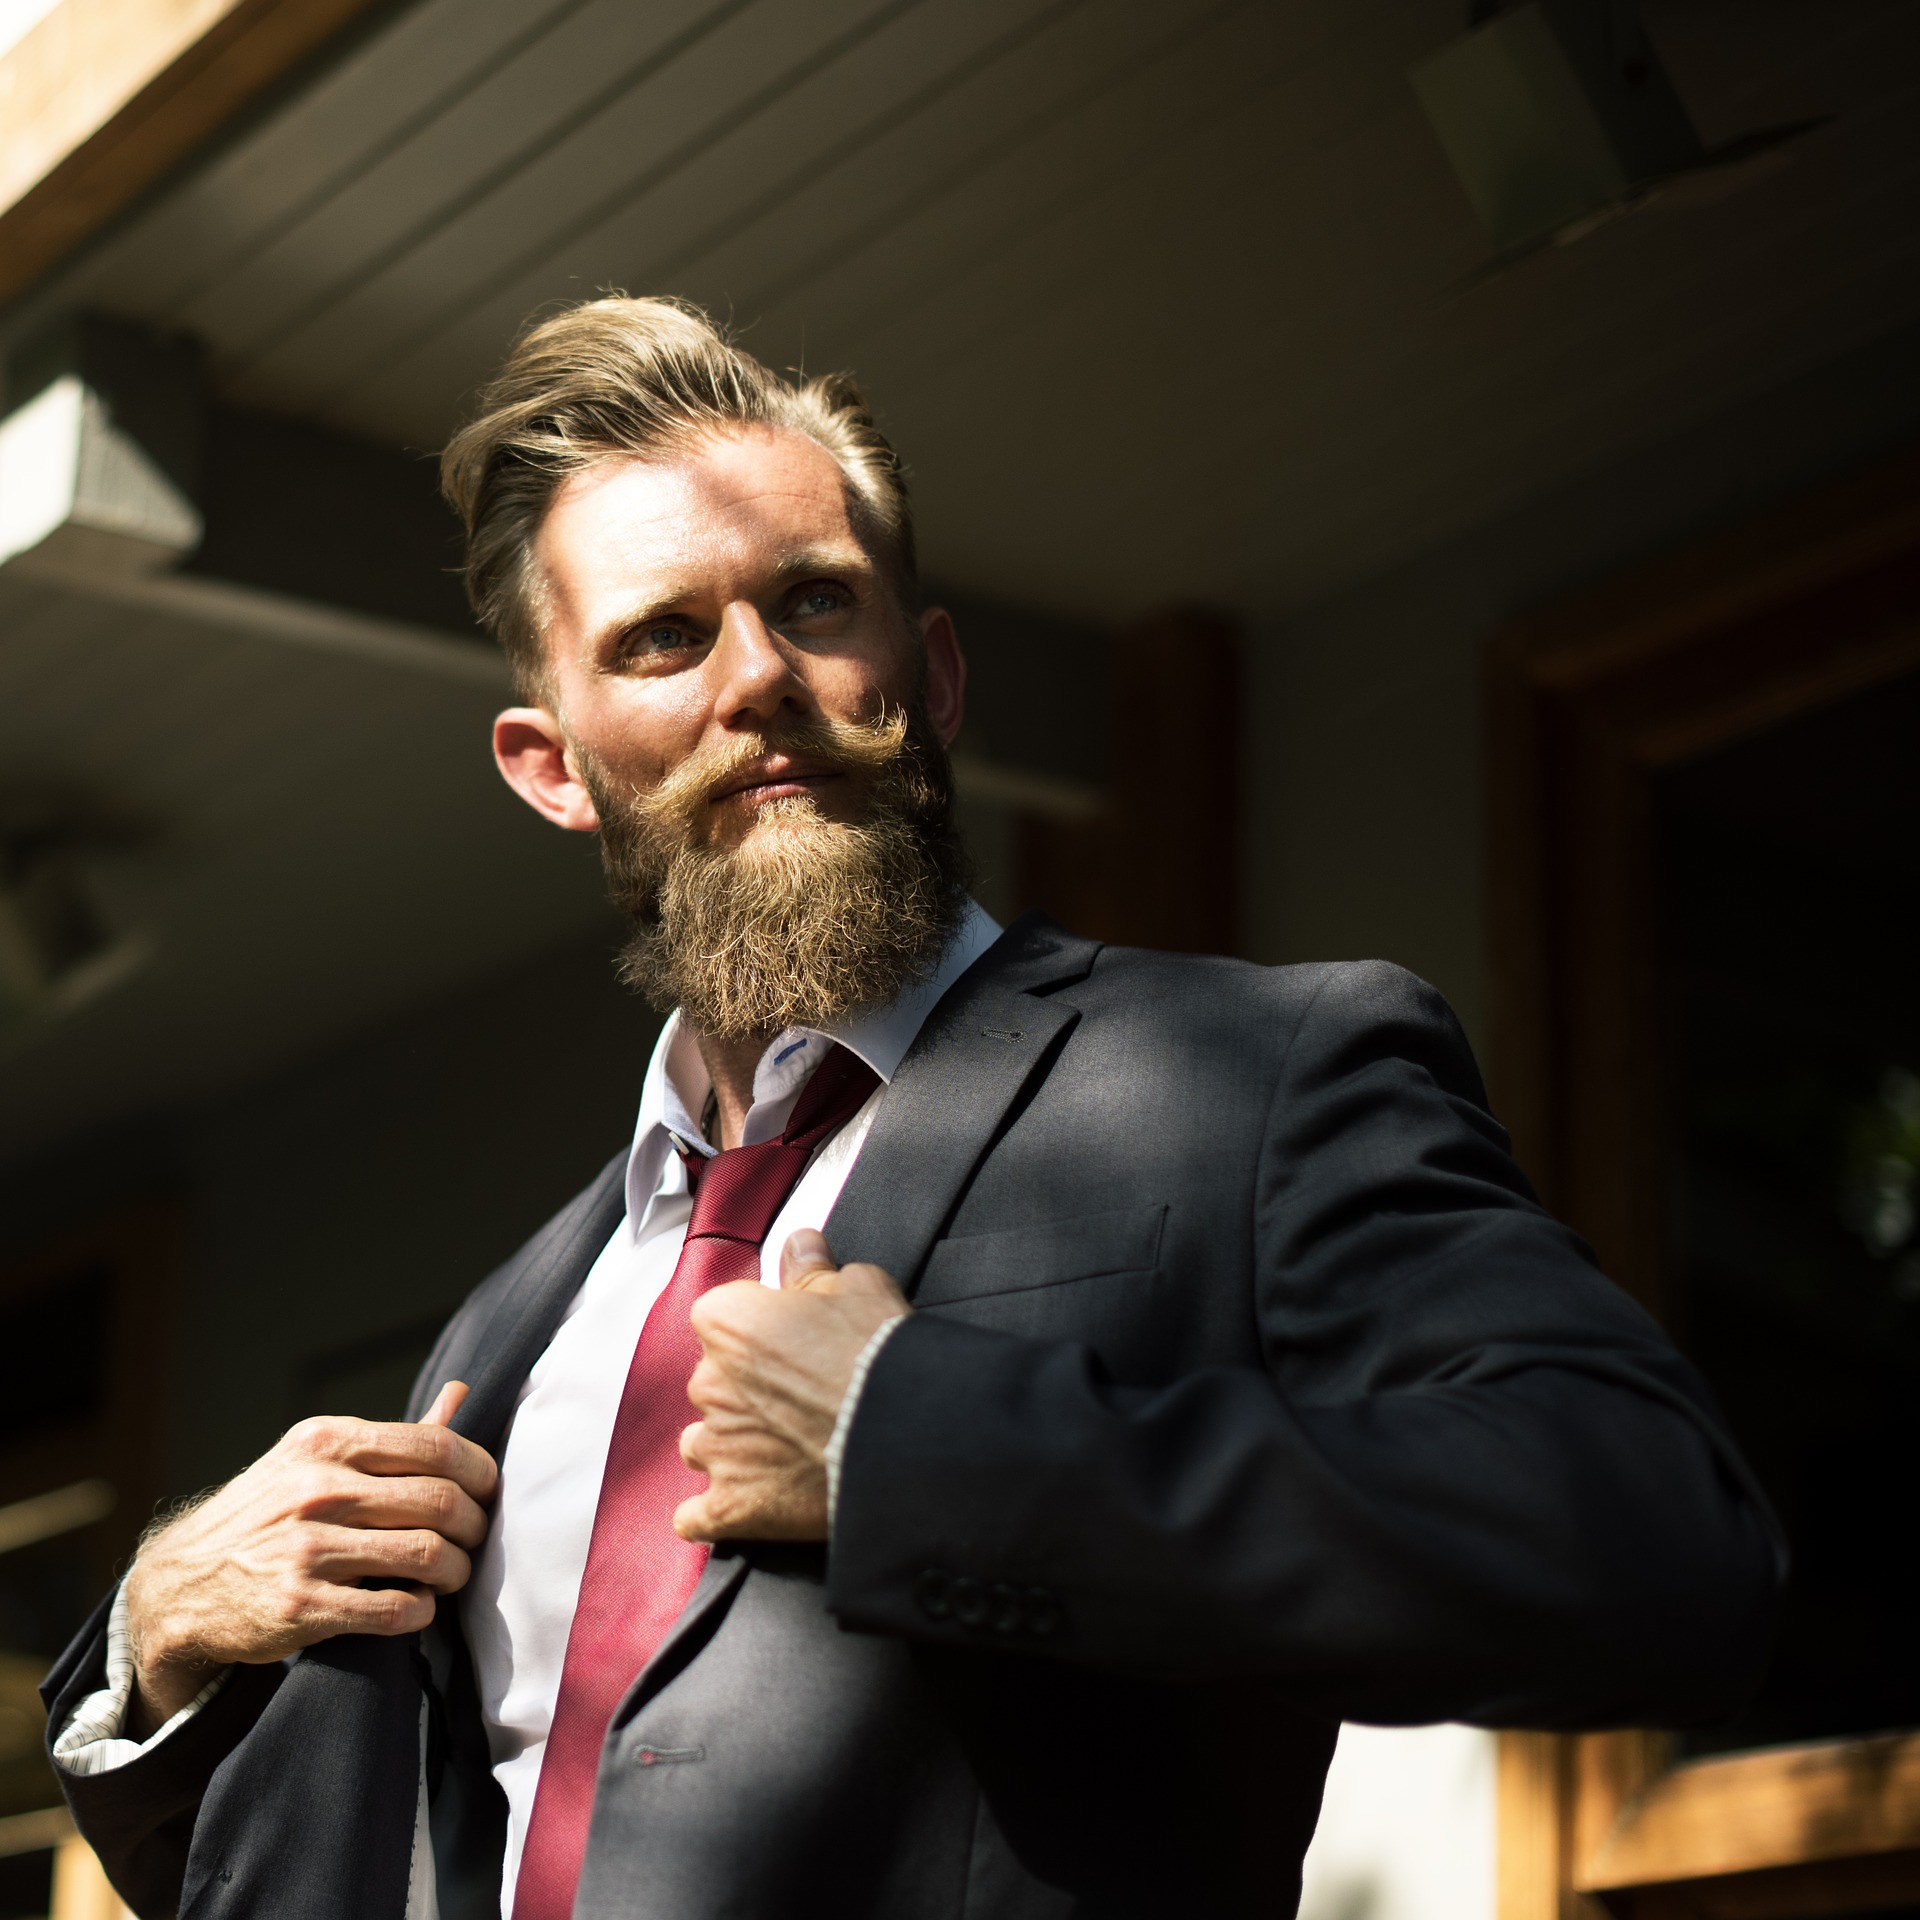 Business man wearing a navy suit